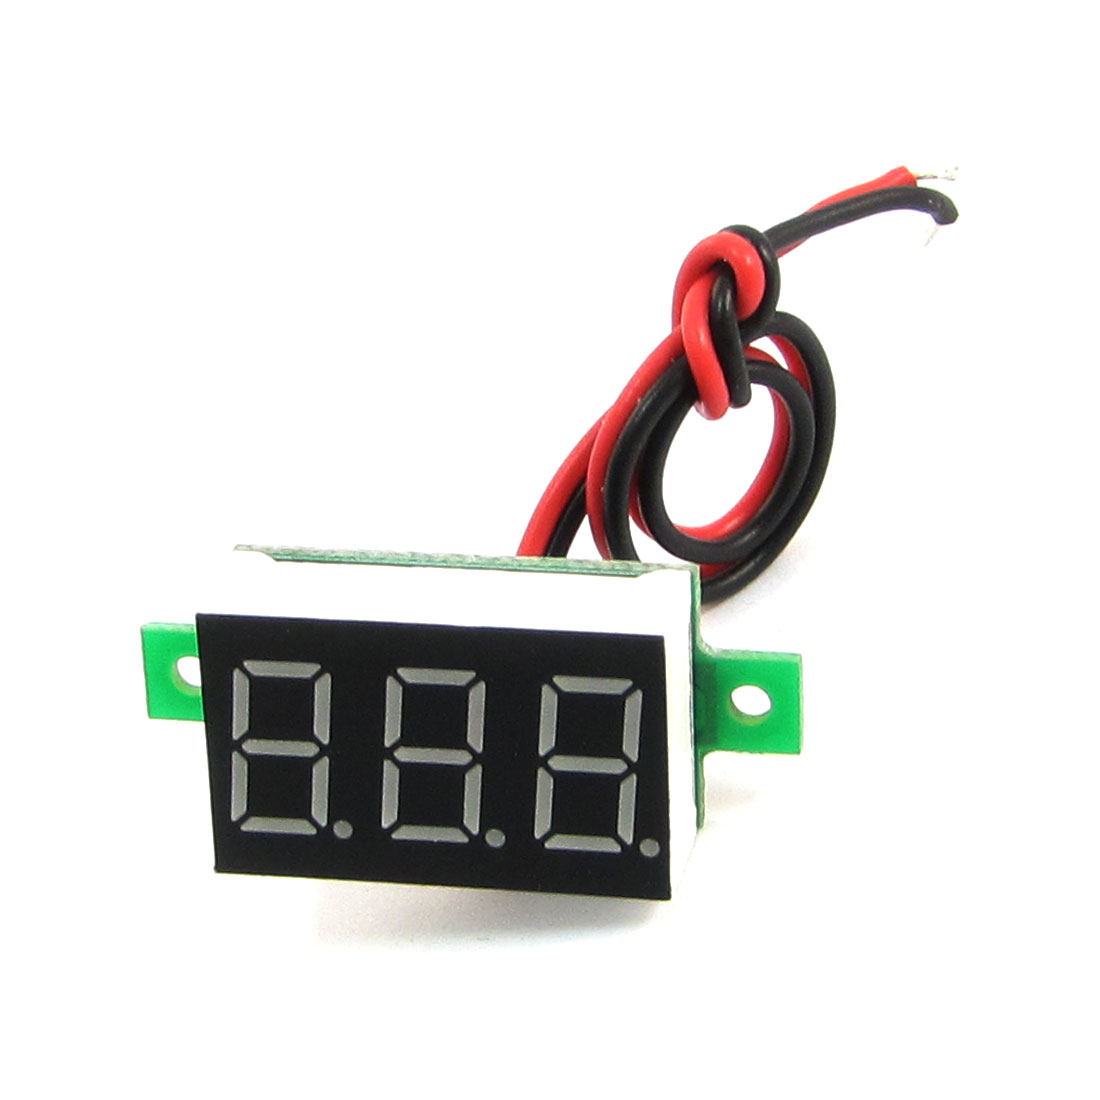 "V20D-T1 0.36"" 7 Segment LED 3-Digital DC 3.2-30V Voltage Voltmeter"